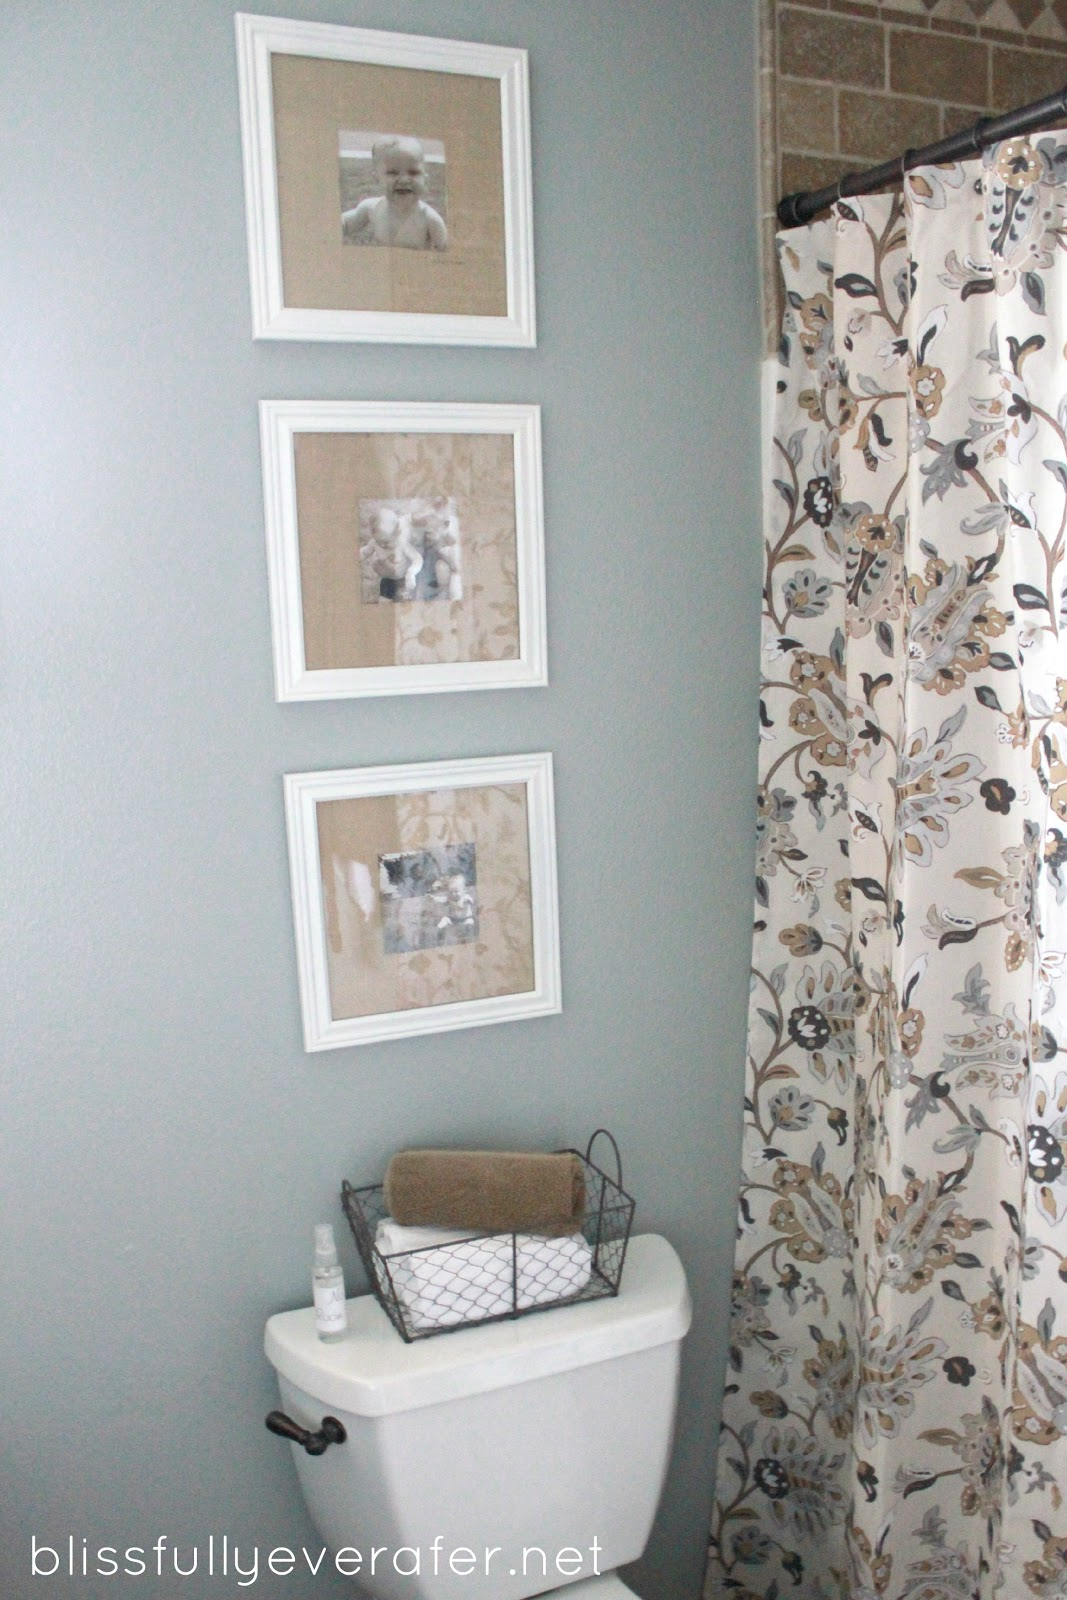 knockoff pottery barn picture frames revamped